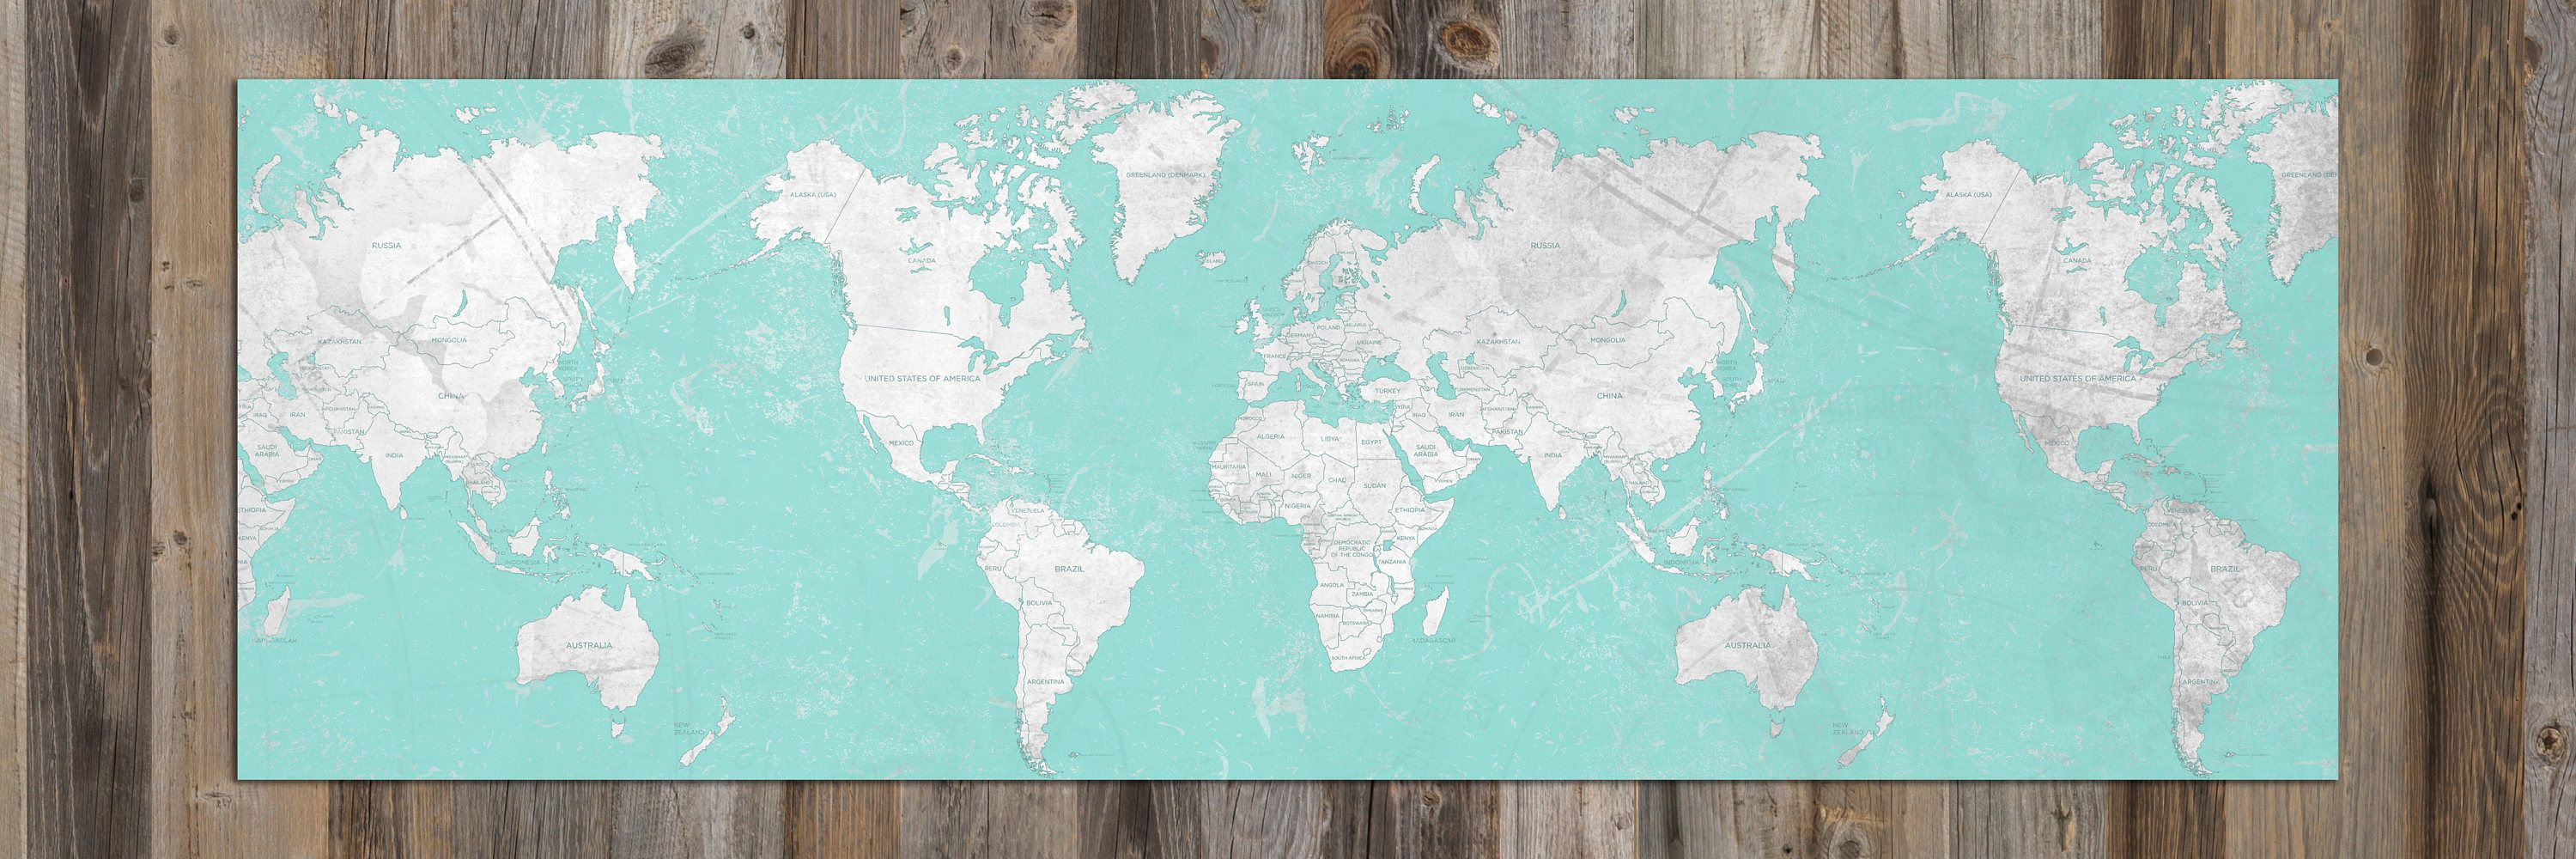 World map canvas print panoramic world map horizontal large wall art world map canvas print panoramic world map horizontal large wall art vintage map blue cyan turquoise oversized travel map wall art poster gumiabroncs Image collections